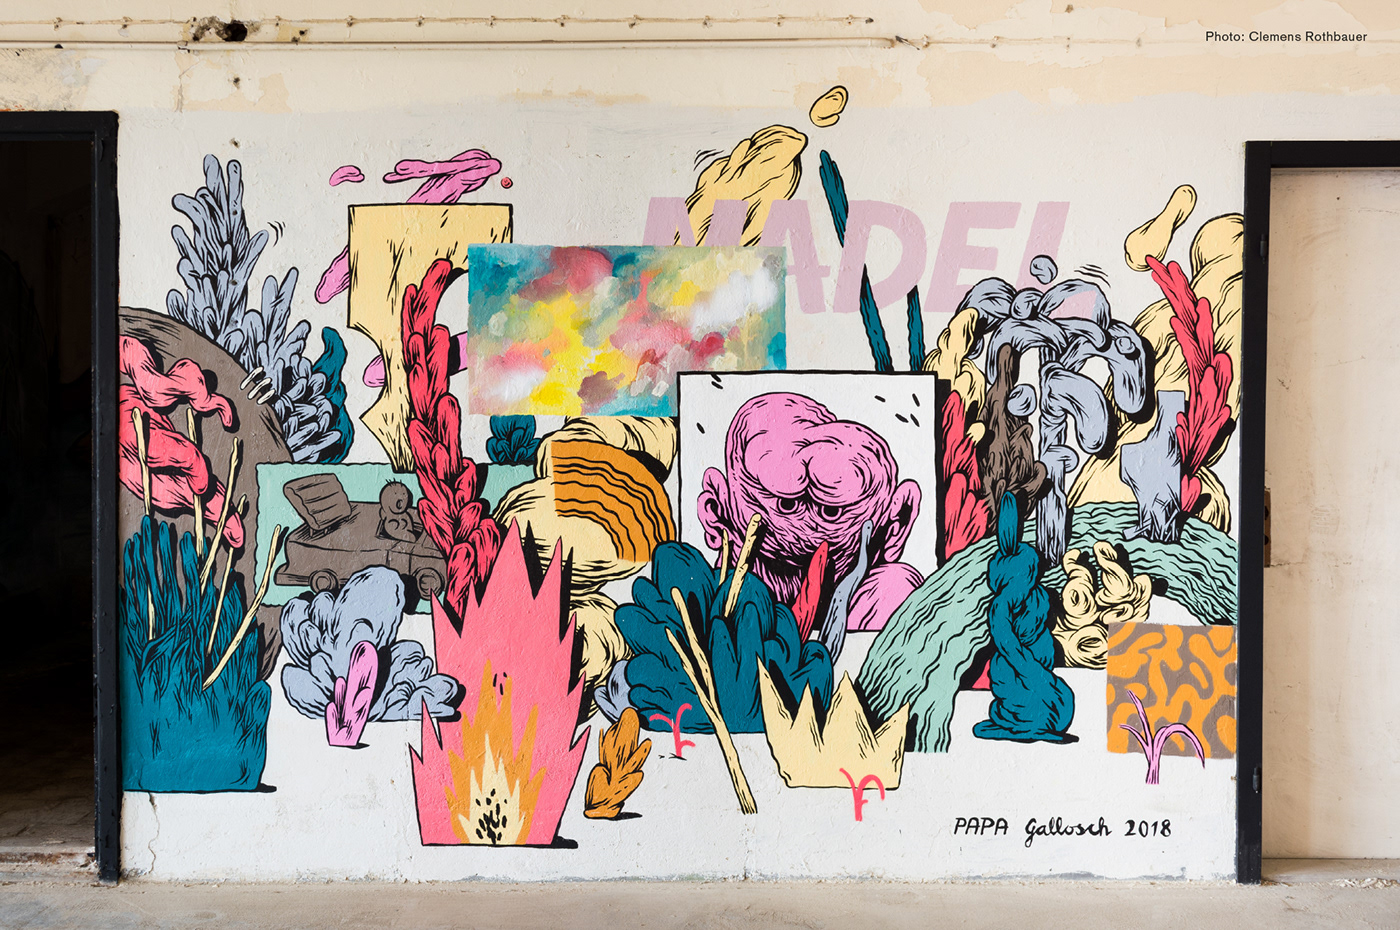 illuistration Street Art  Mural Graffiti Nature collage abstract comic contemporary graphic